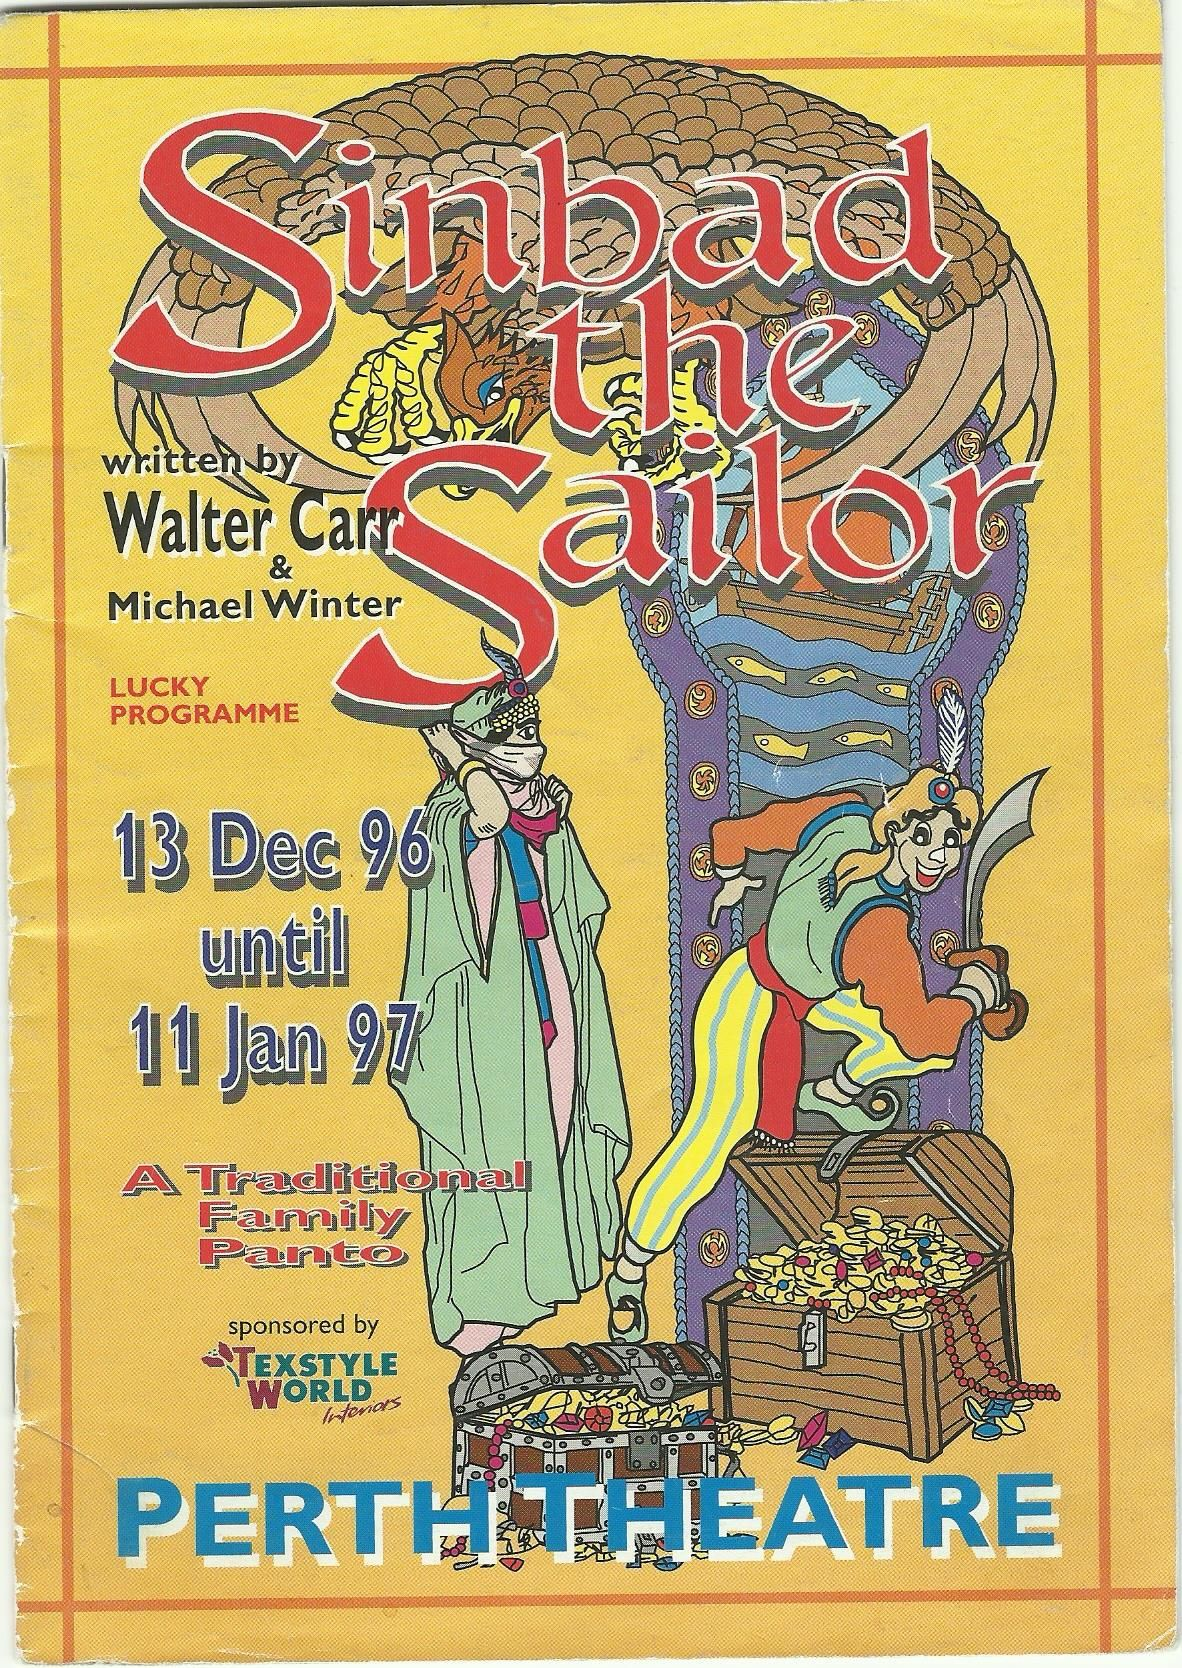 Posters Perth Poster Of Sinbad The Sailor In Perth Theatre S Pantomime 13th